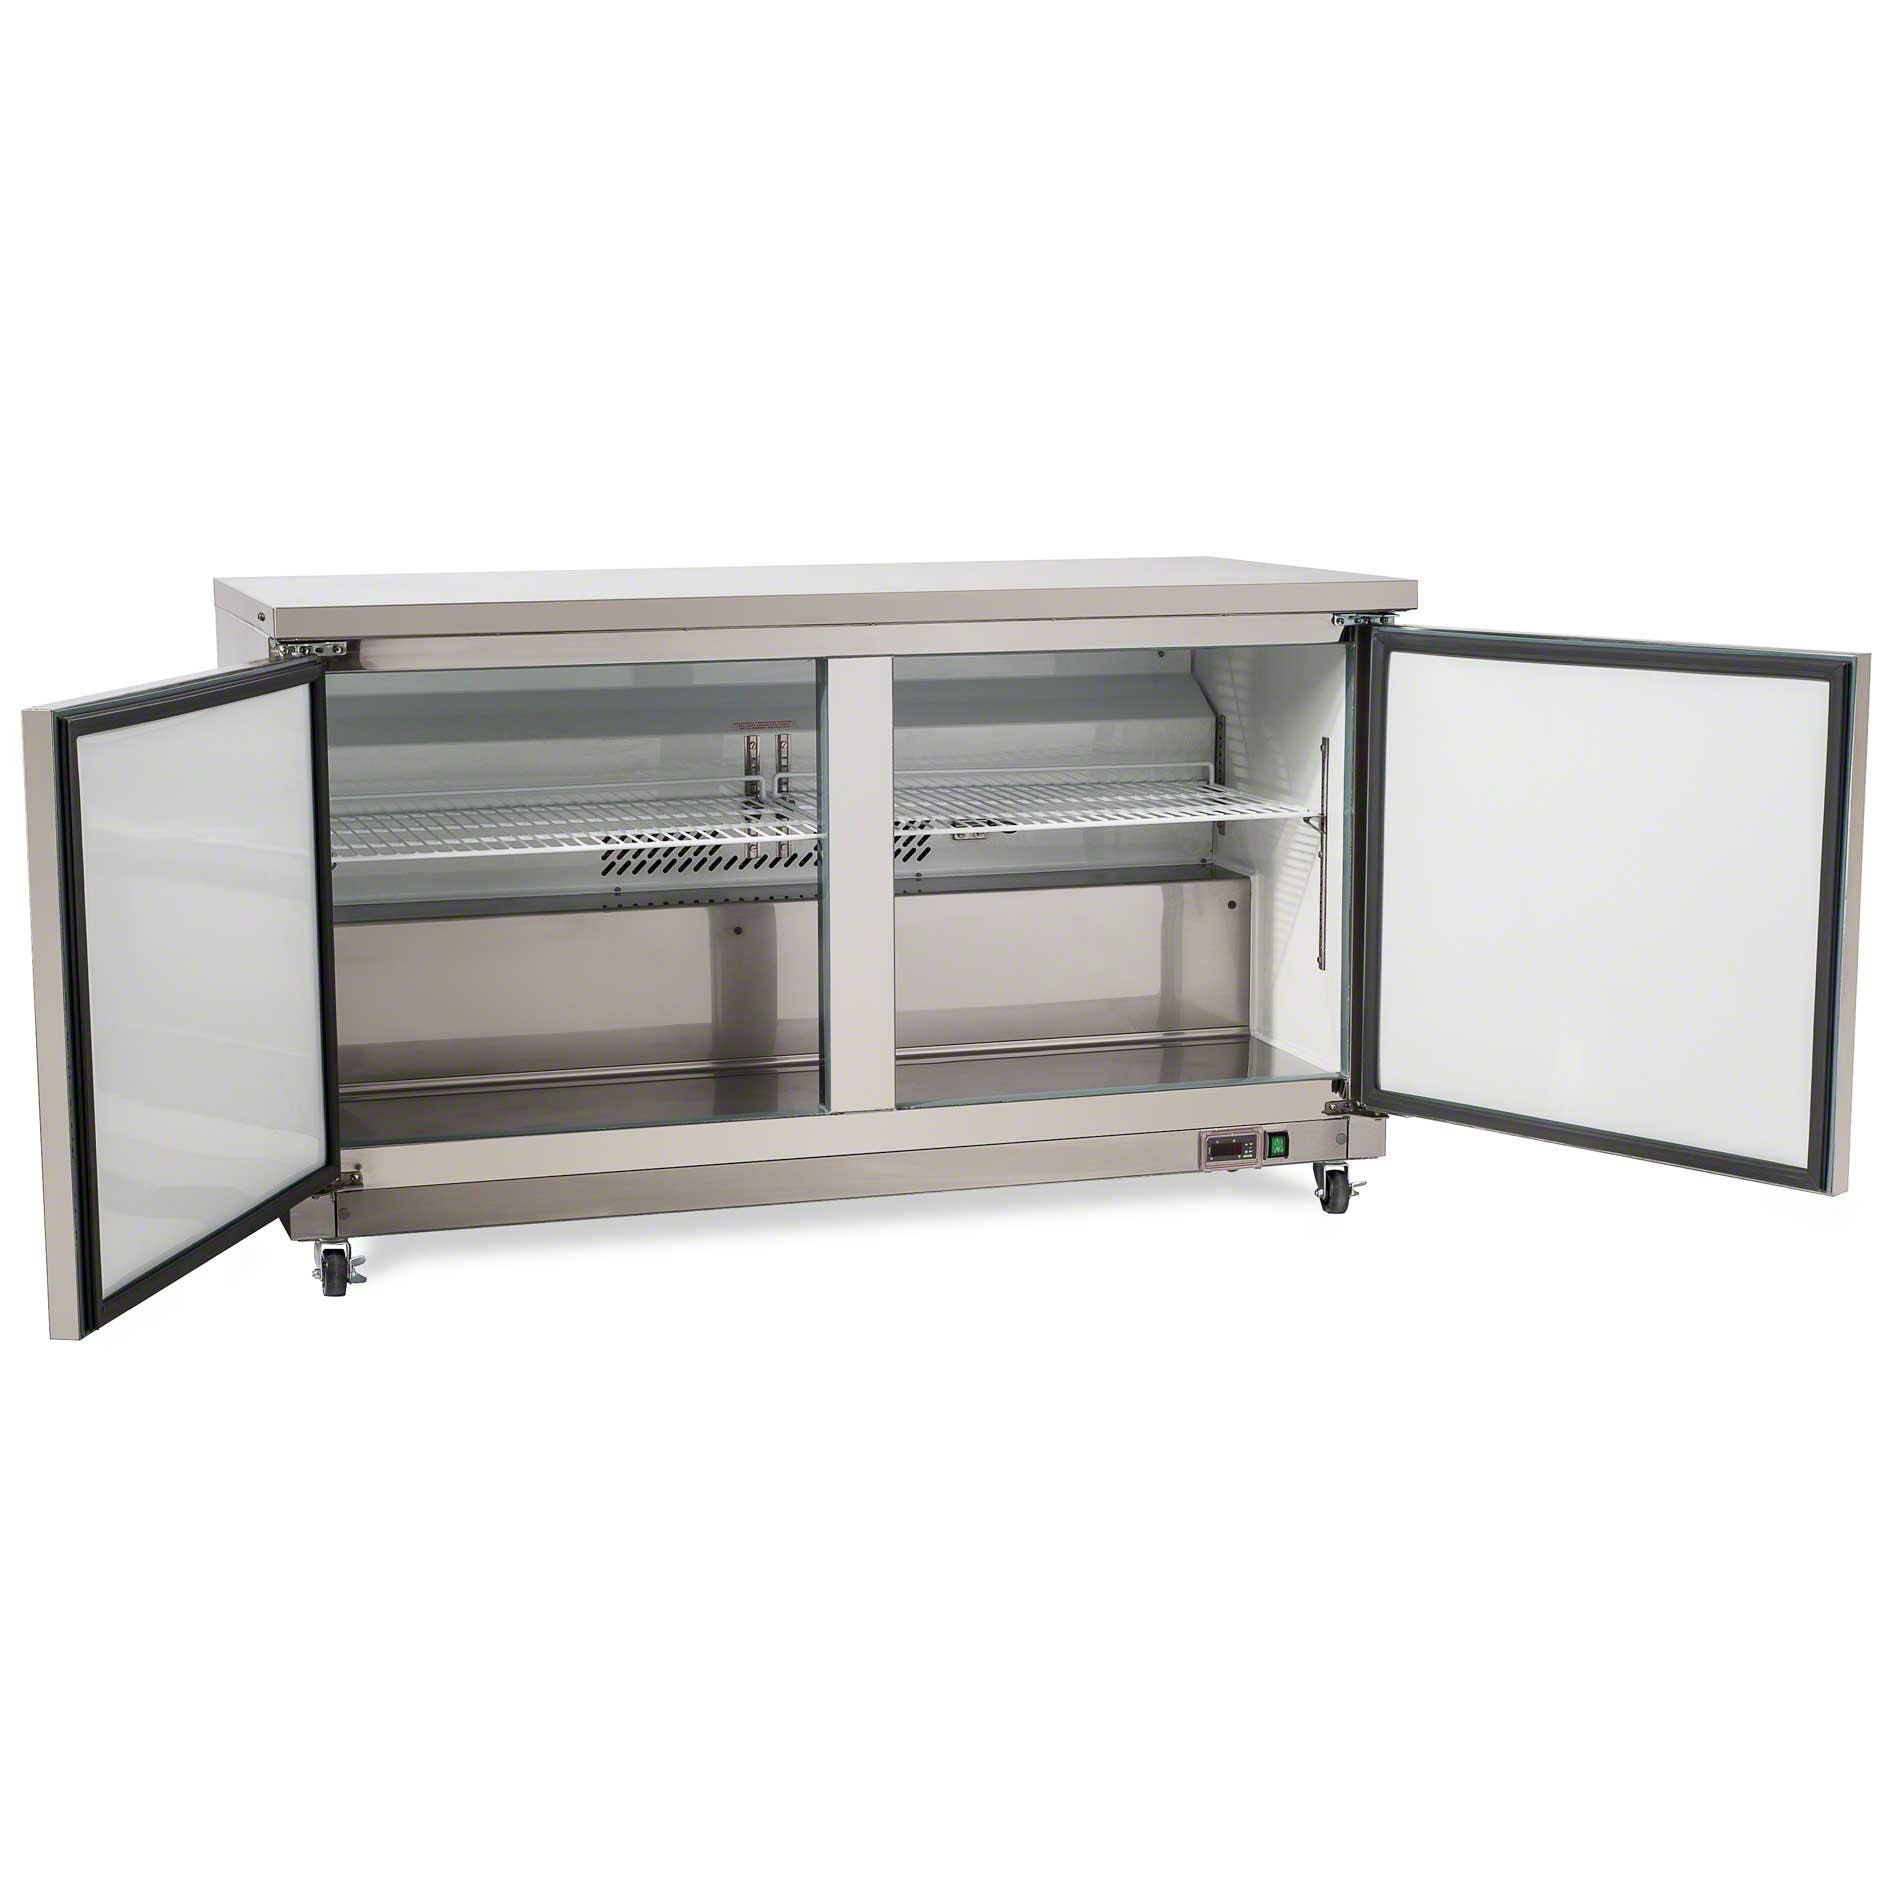 "Saturn Equipment ( PUC60F ) - 61"" Undercounter Freezer - Value Series - sold by Food Service Warehouse"